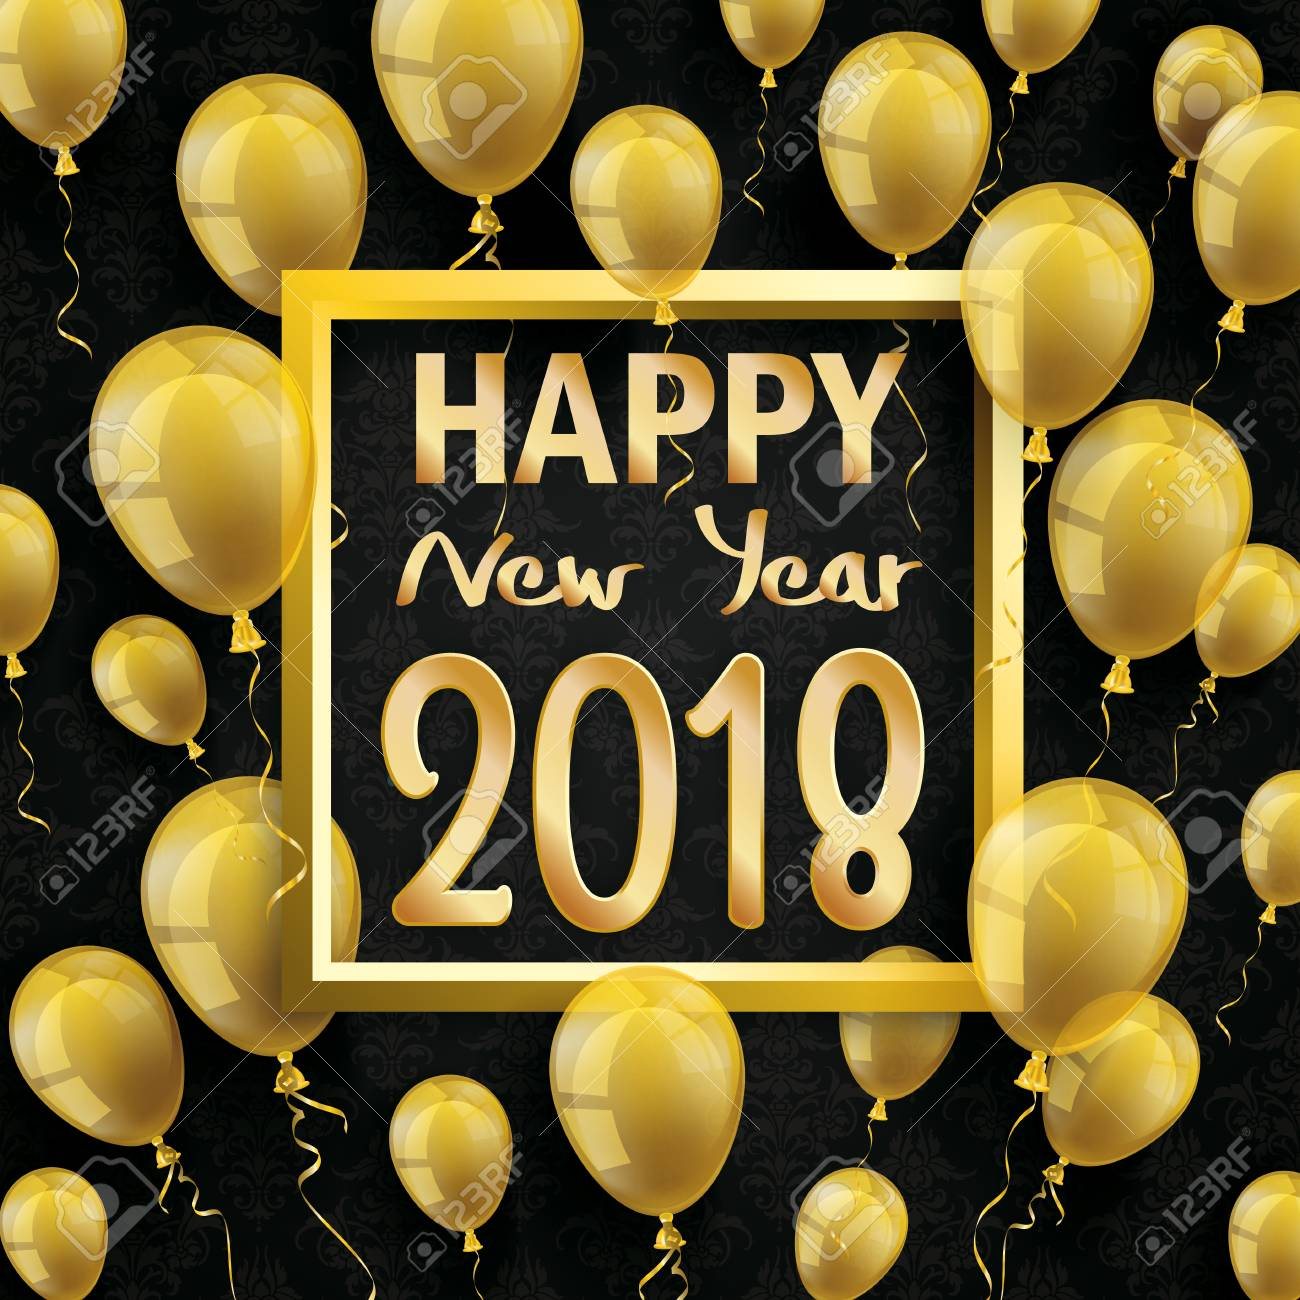 golden balloons with golden frame and text happy new year 2018 on the black wallpaper